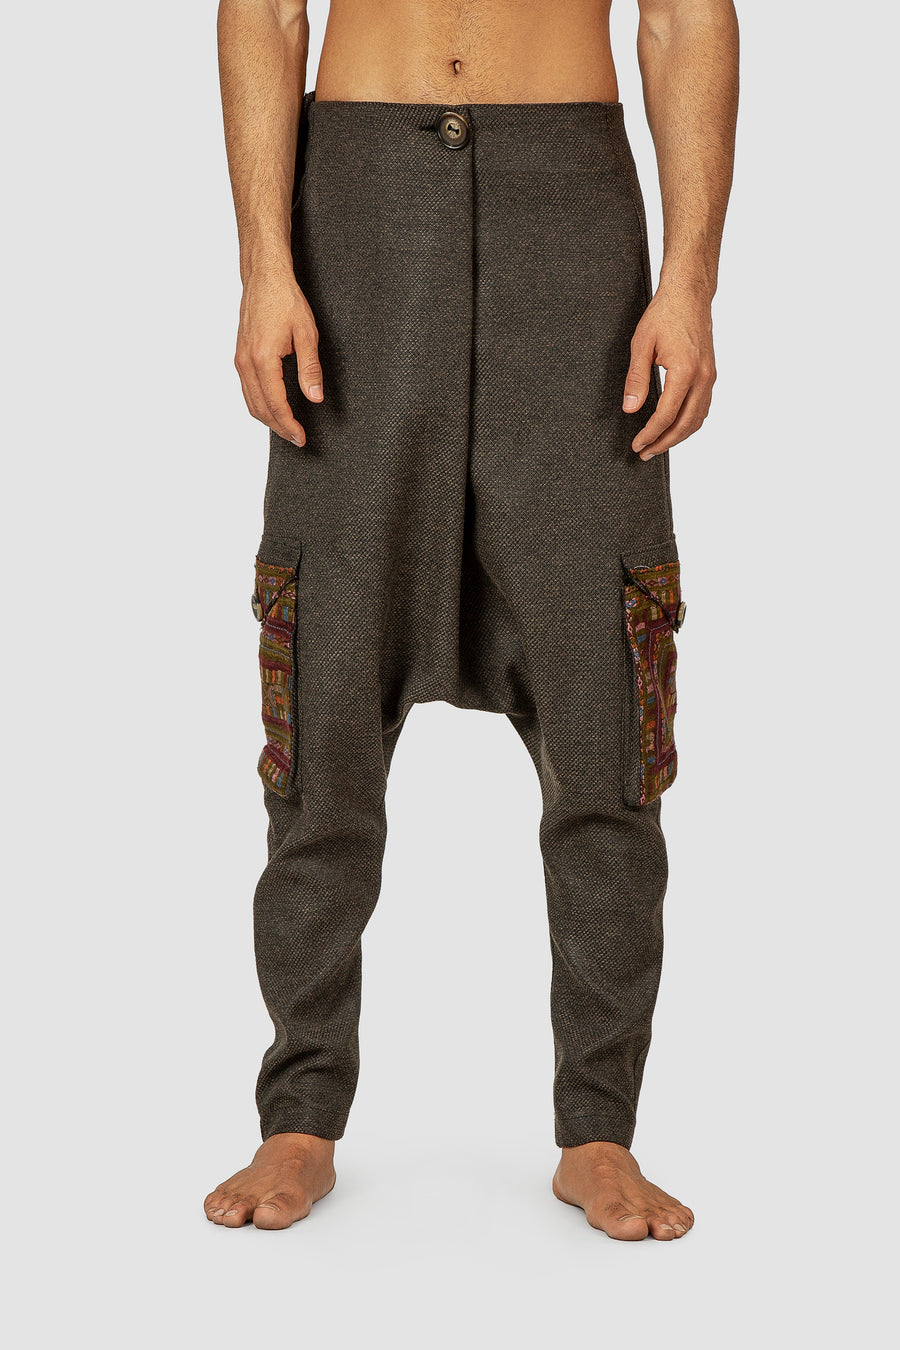 Charcoal Crossover Waist Embroidered Harem Pants